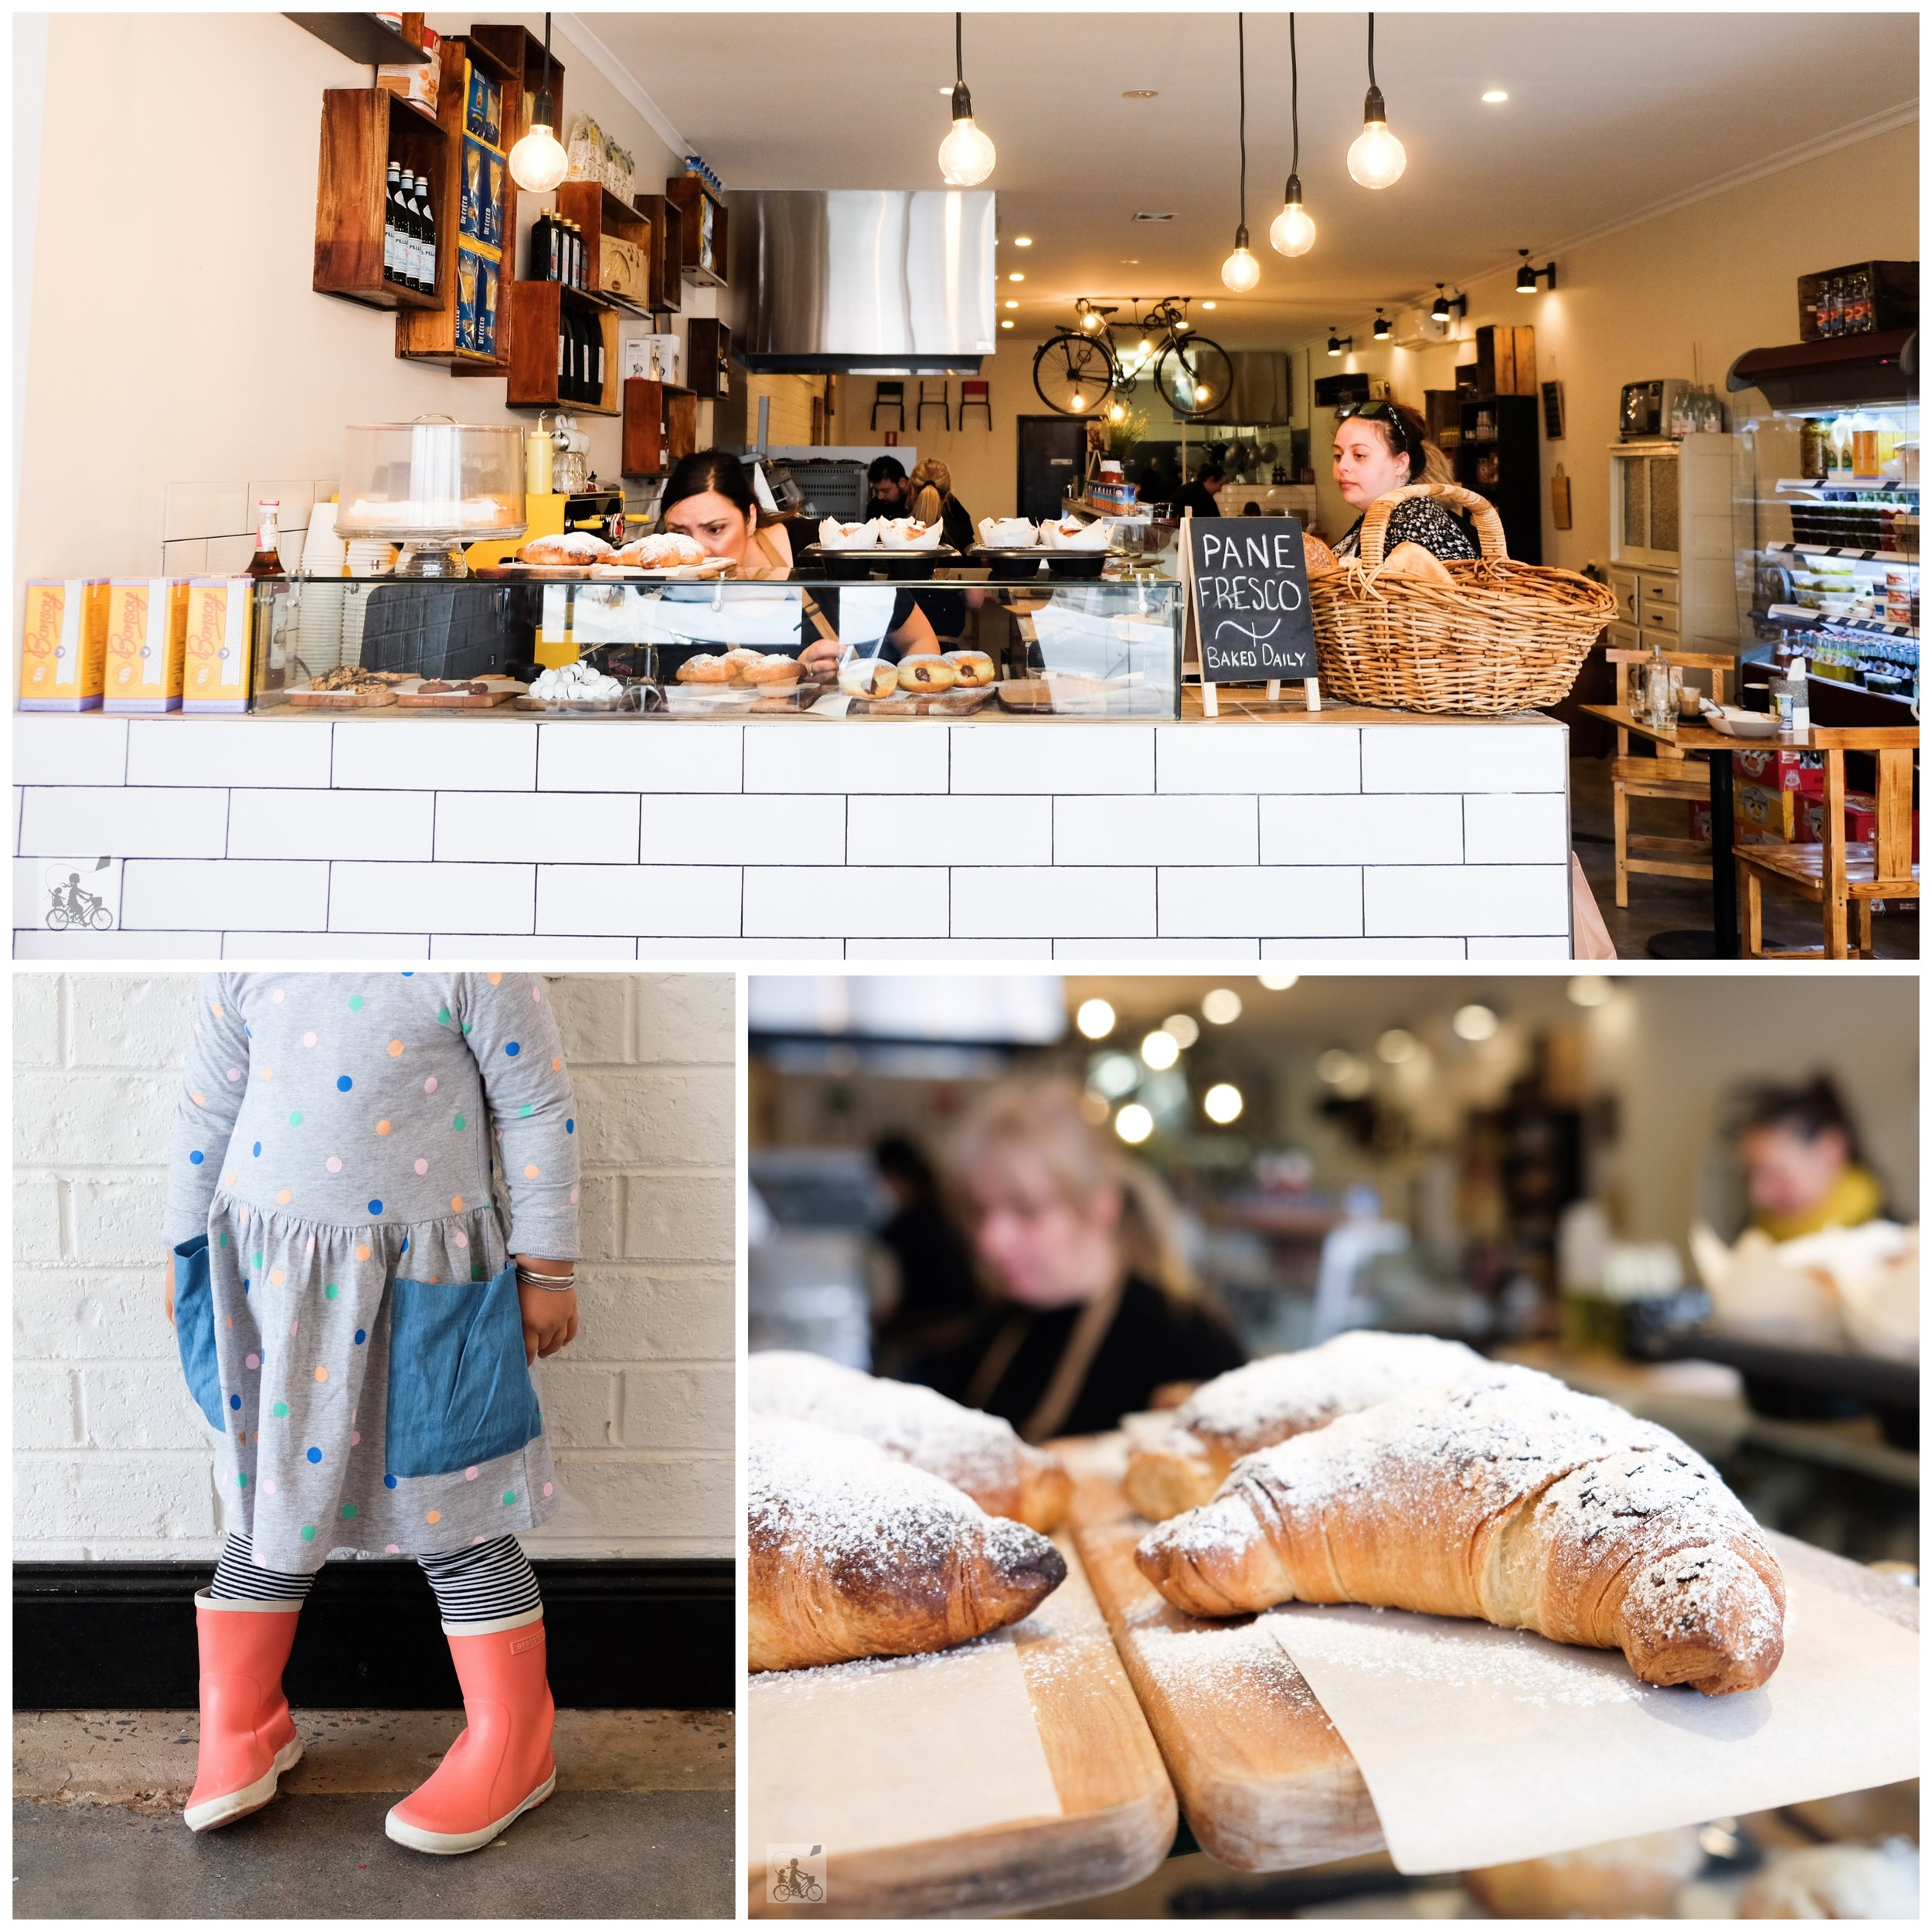 the fork shop, fawkner - mamma knows